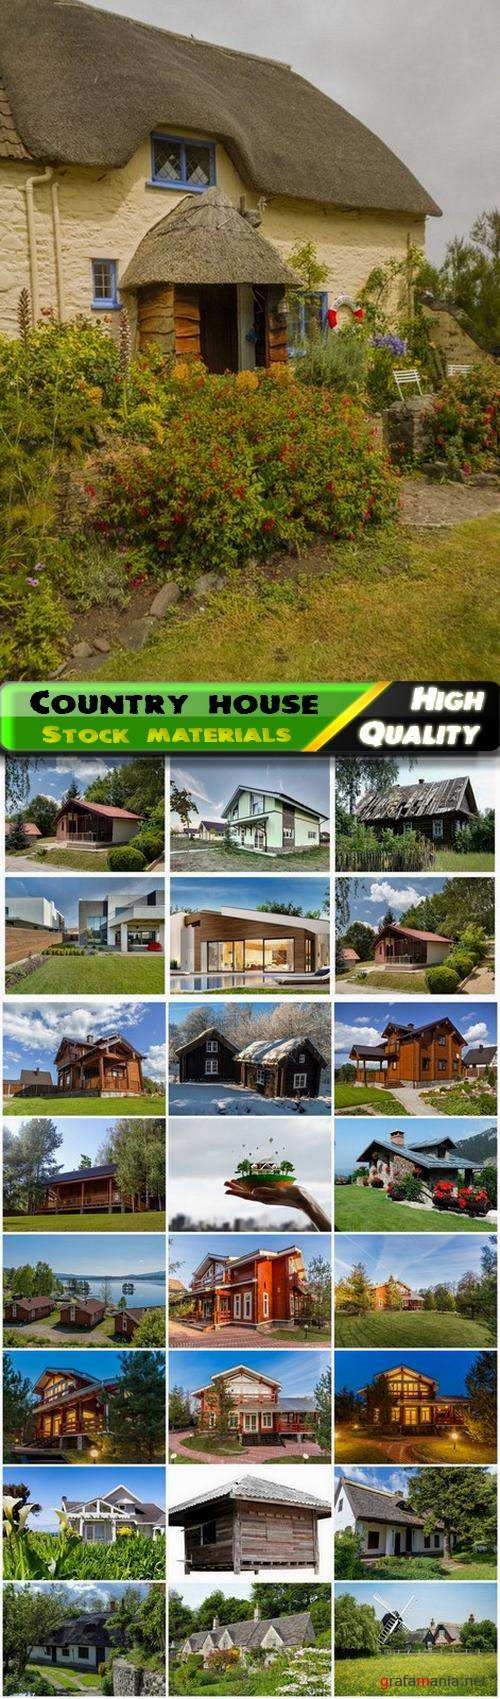 Country house and cottage building exteriors with lawn 25 Jpg